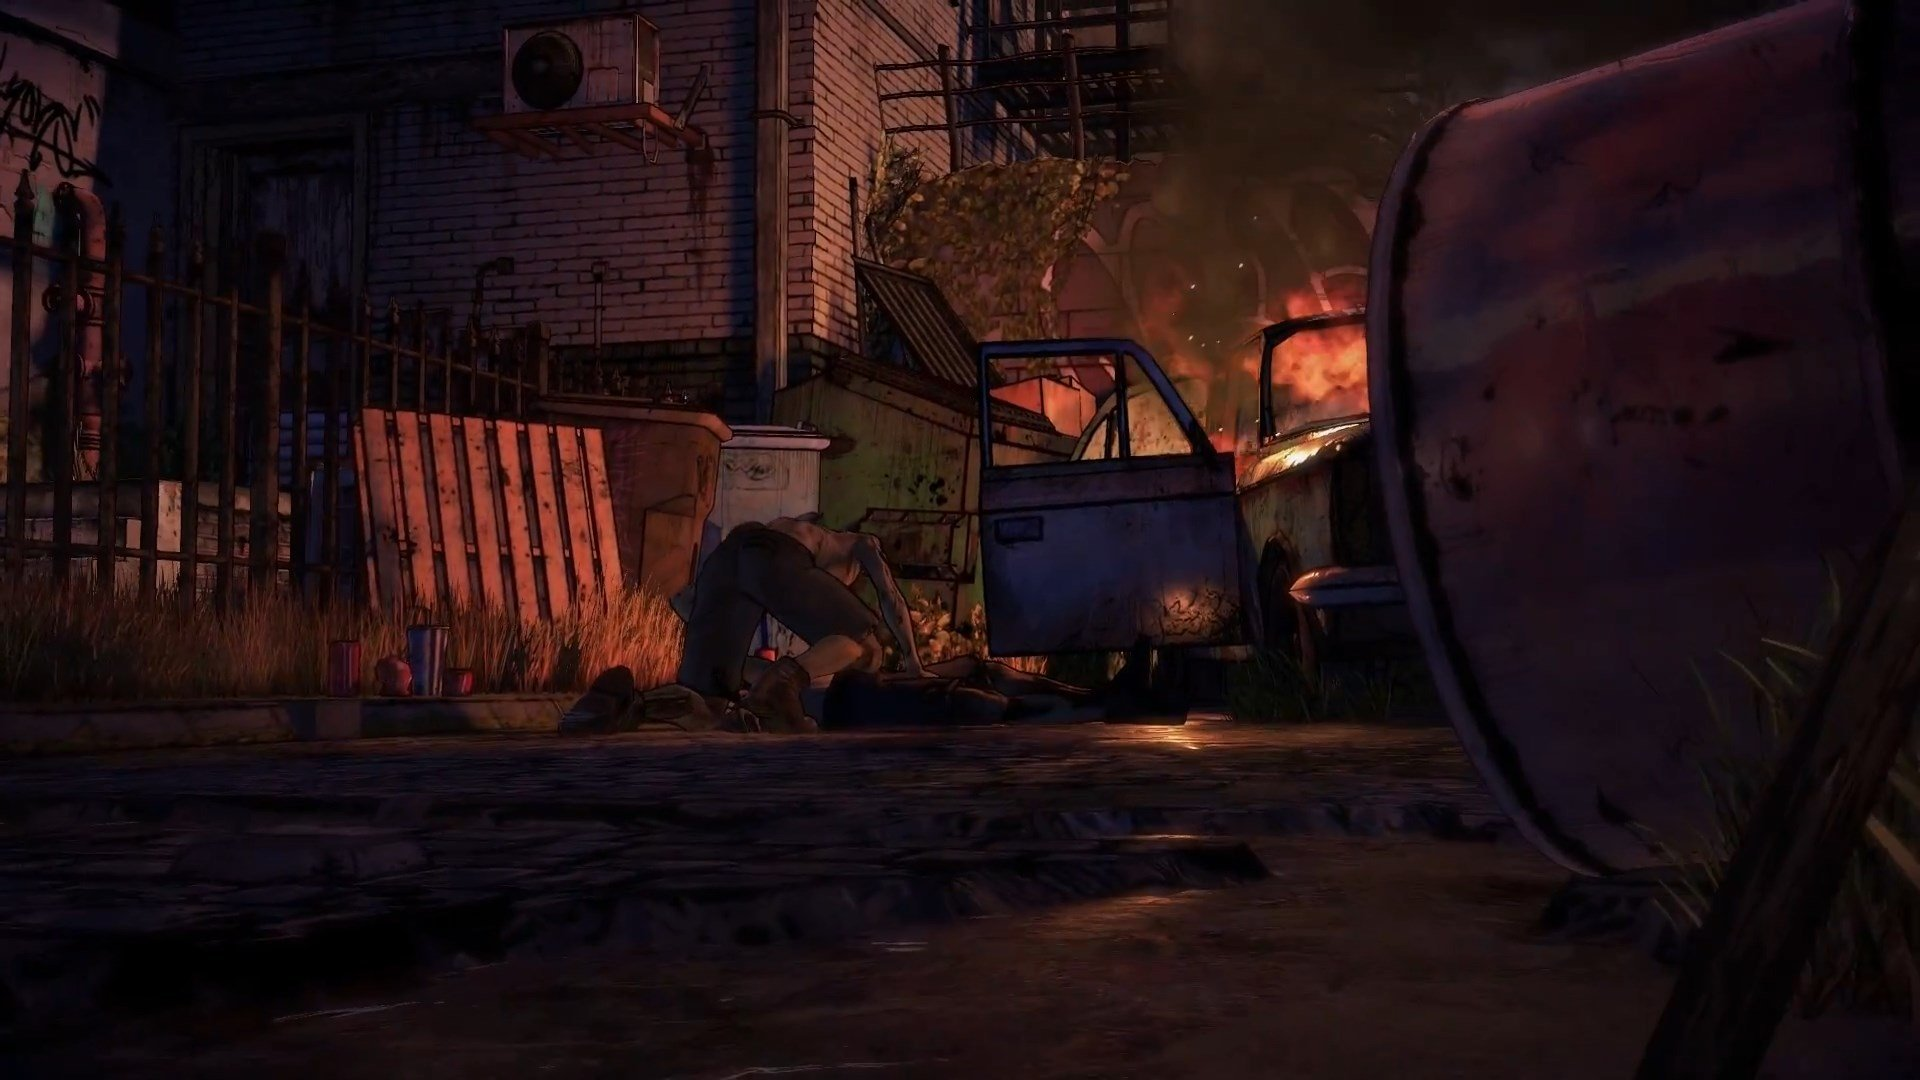 Season 3 of the walking dead game is coming later this year, and heres the game trailer, in which teenage clem and